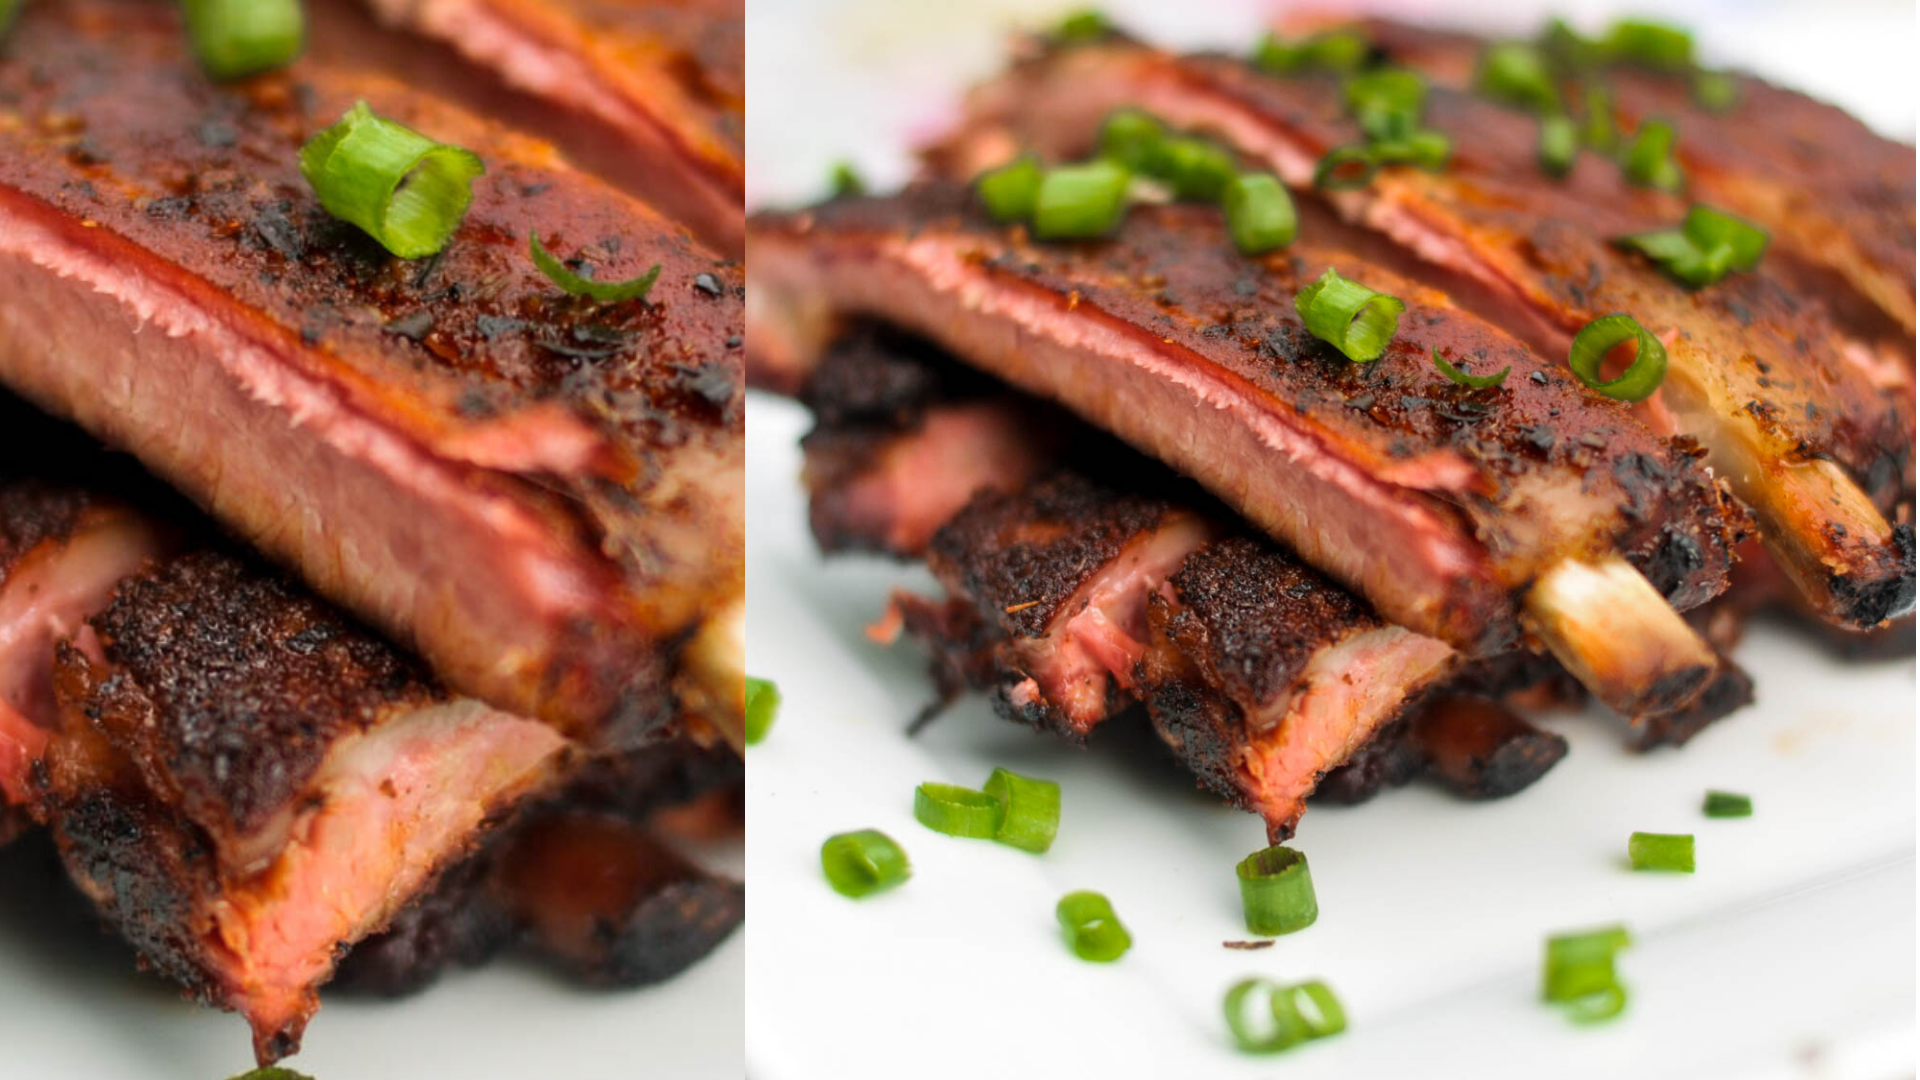 image of cajun-spiced barbecue ribs recipe from serious eats